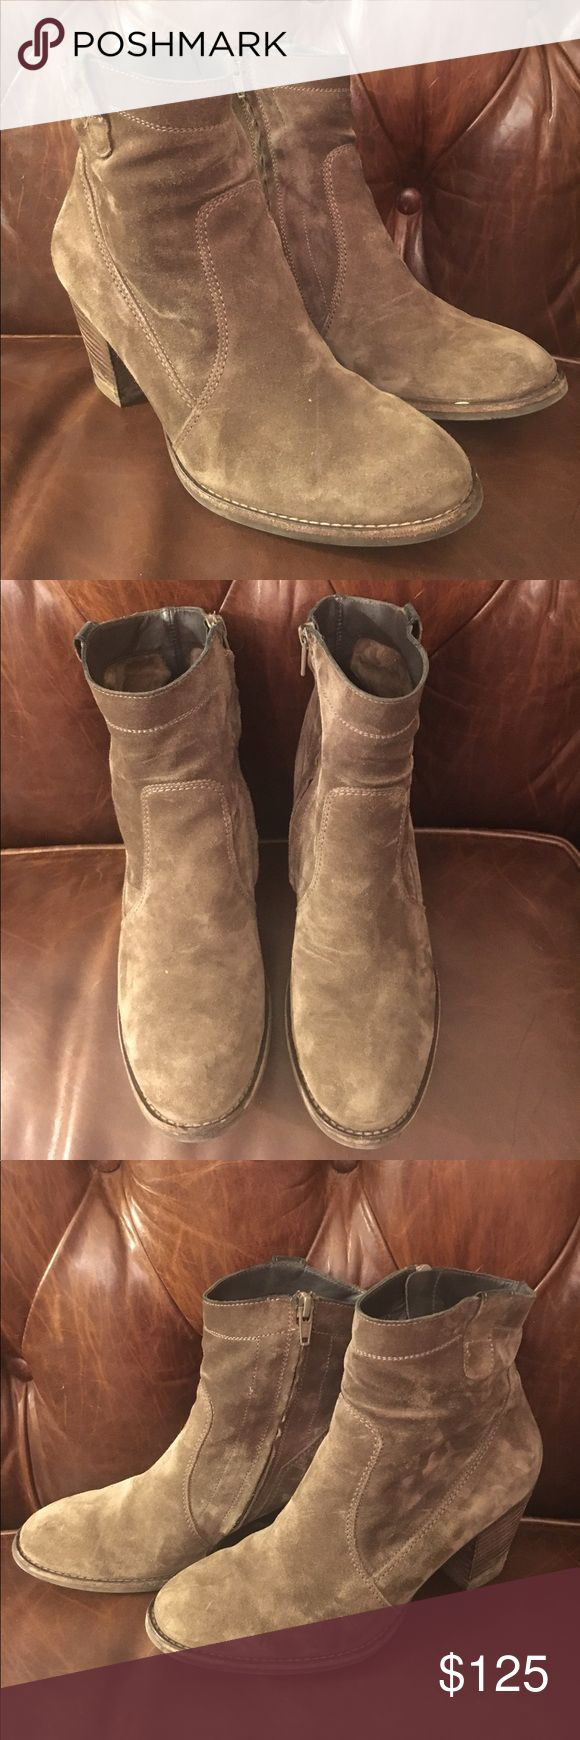 Paul Green Grey Suede Bootie Paul Green boots are like nothing else on this planet!! You could run a marathon in these boots they're so comfortable. Paul Green Shoes Ankle Boots & Booties